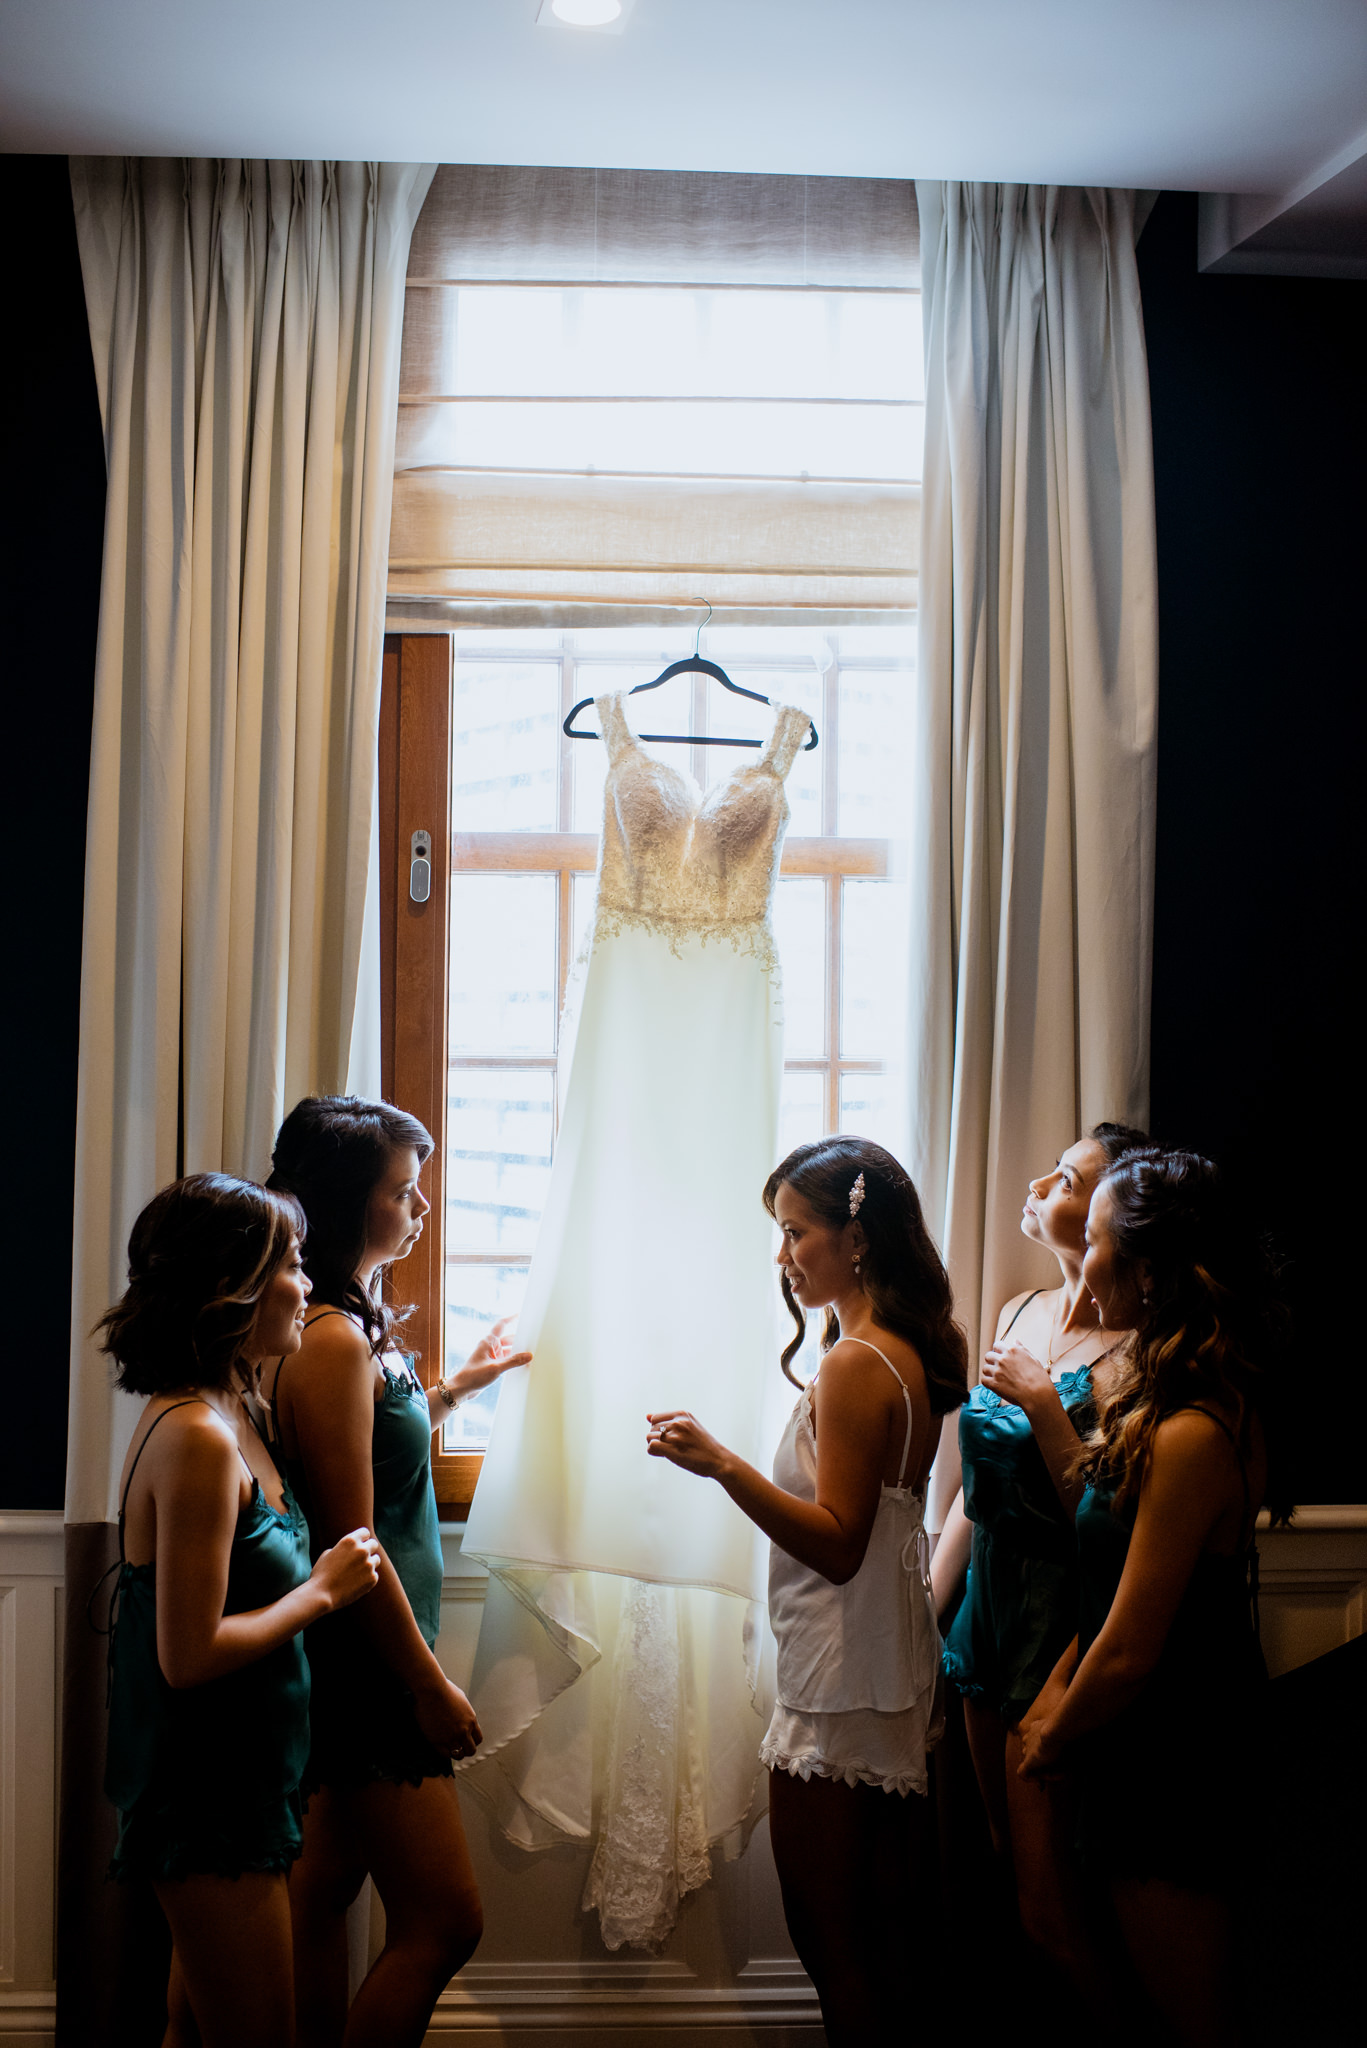 Bride admiring her dress in windowsill whilst bridesmaids surround her